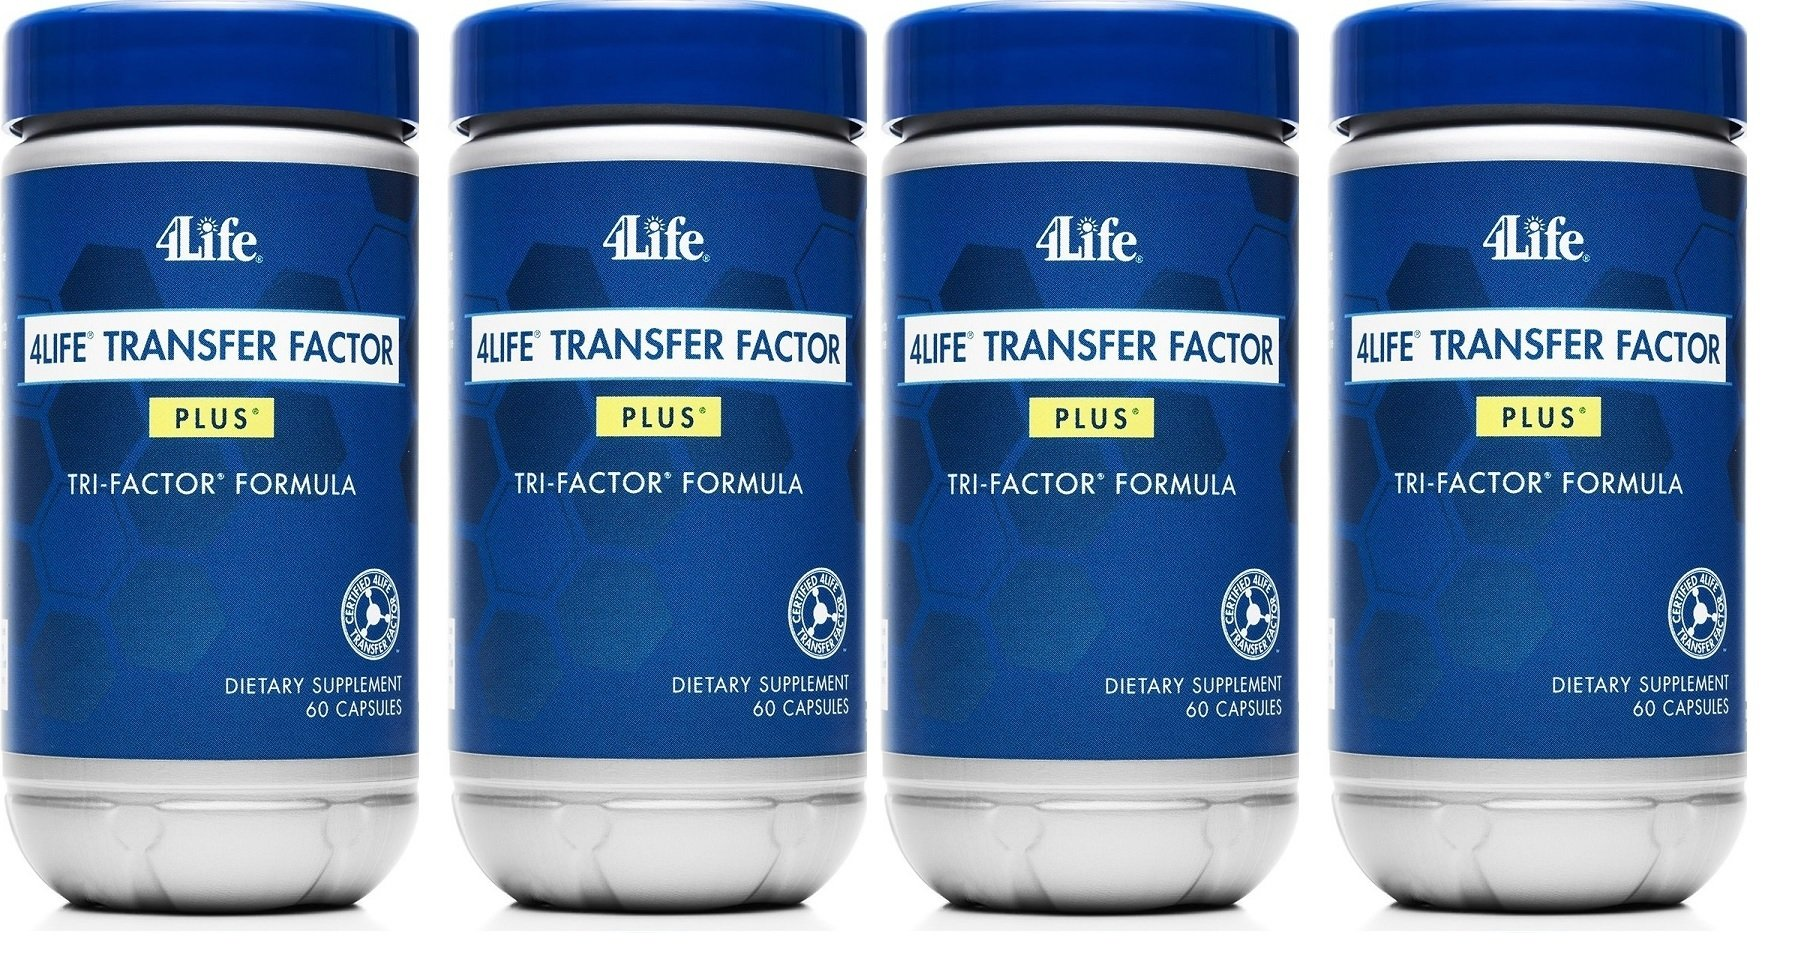 x 4 Transfer Factor Plus Tri-Factor Quad - 4Life Foundation by 4Life Research